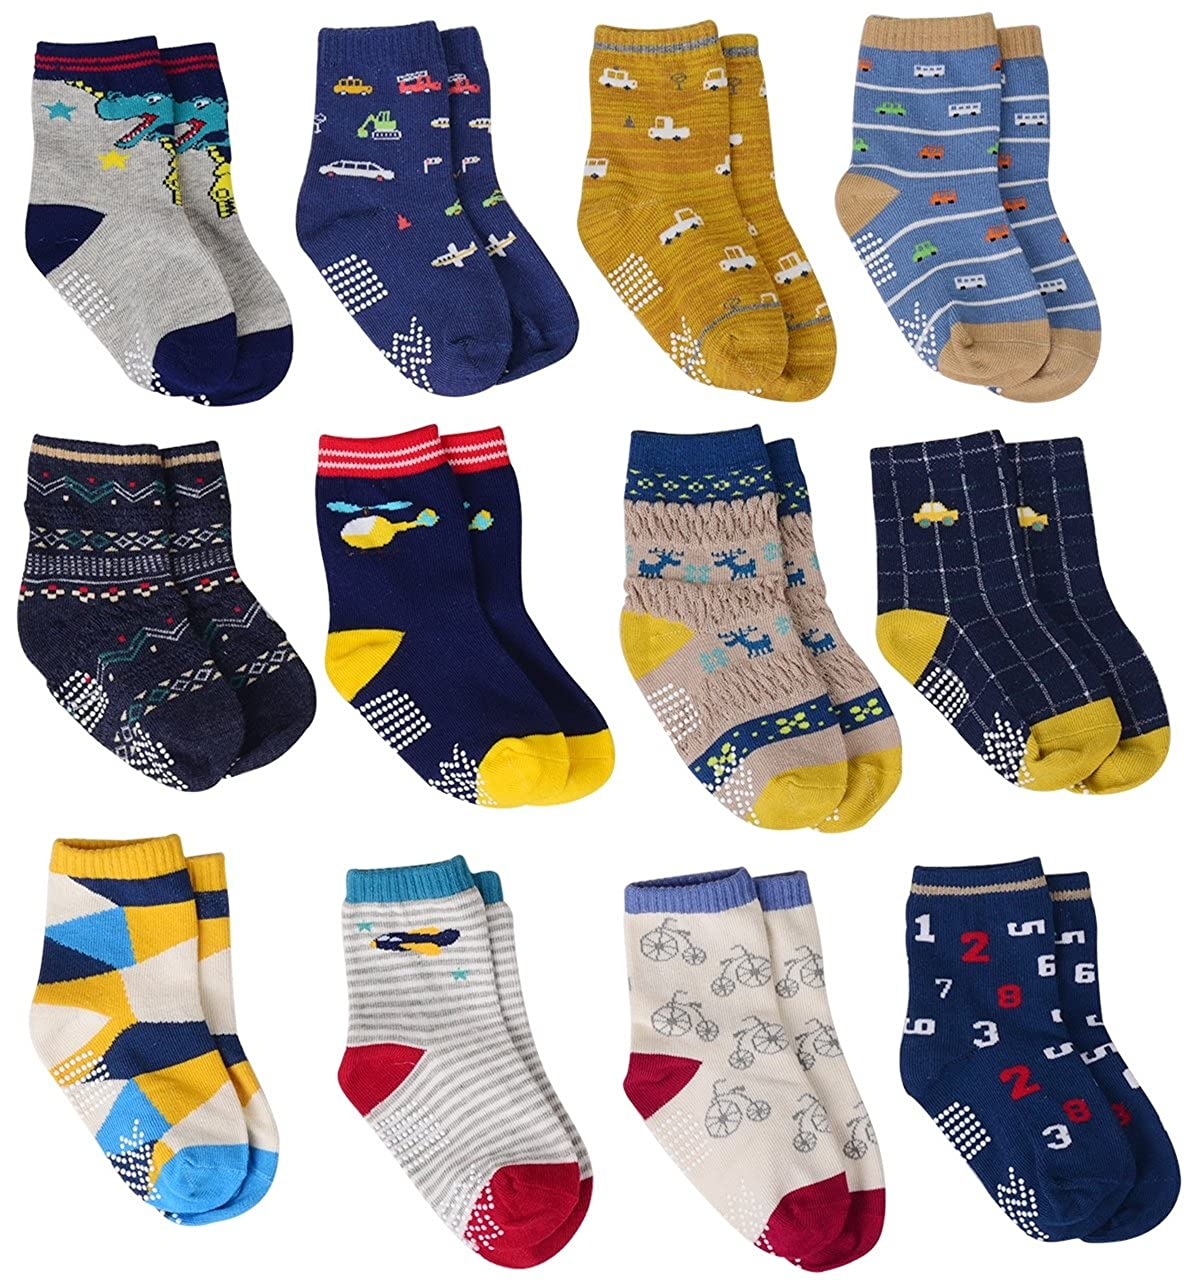 12 Pairs Baby Boy Socks Non Skid with Grips, Toddler Boy Anti skid Socks